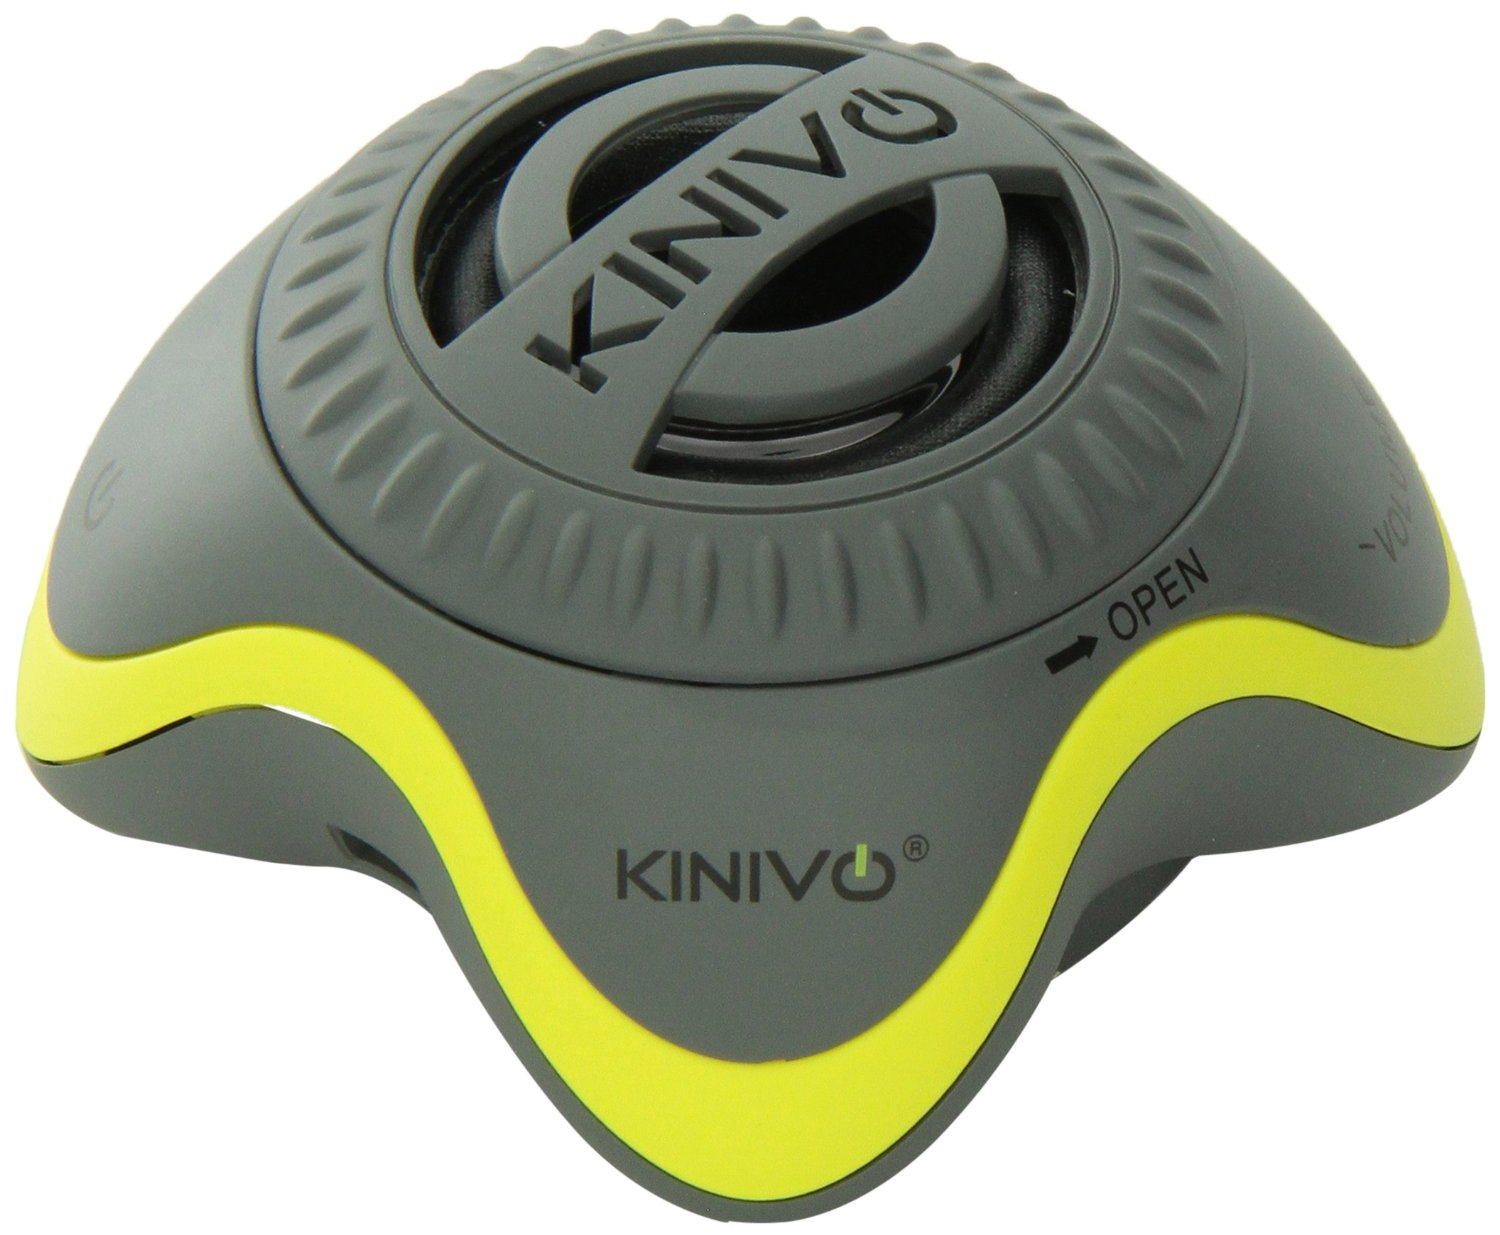 Kinivo Zx100 Instructions